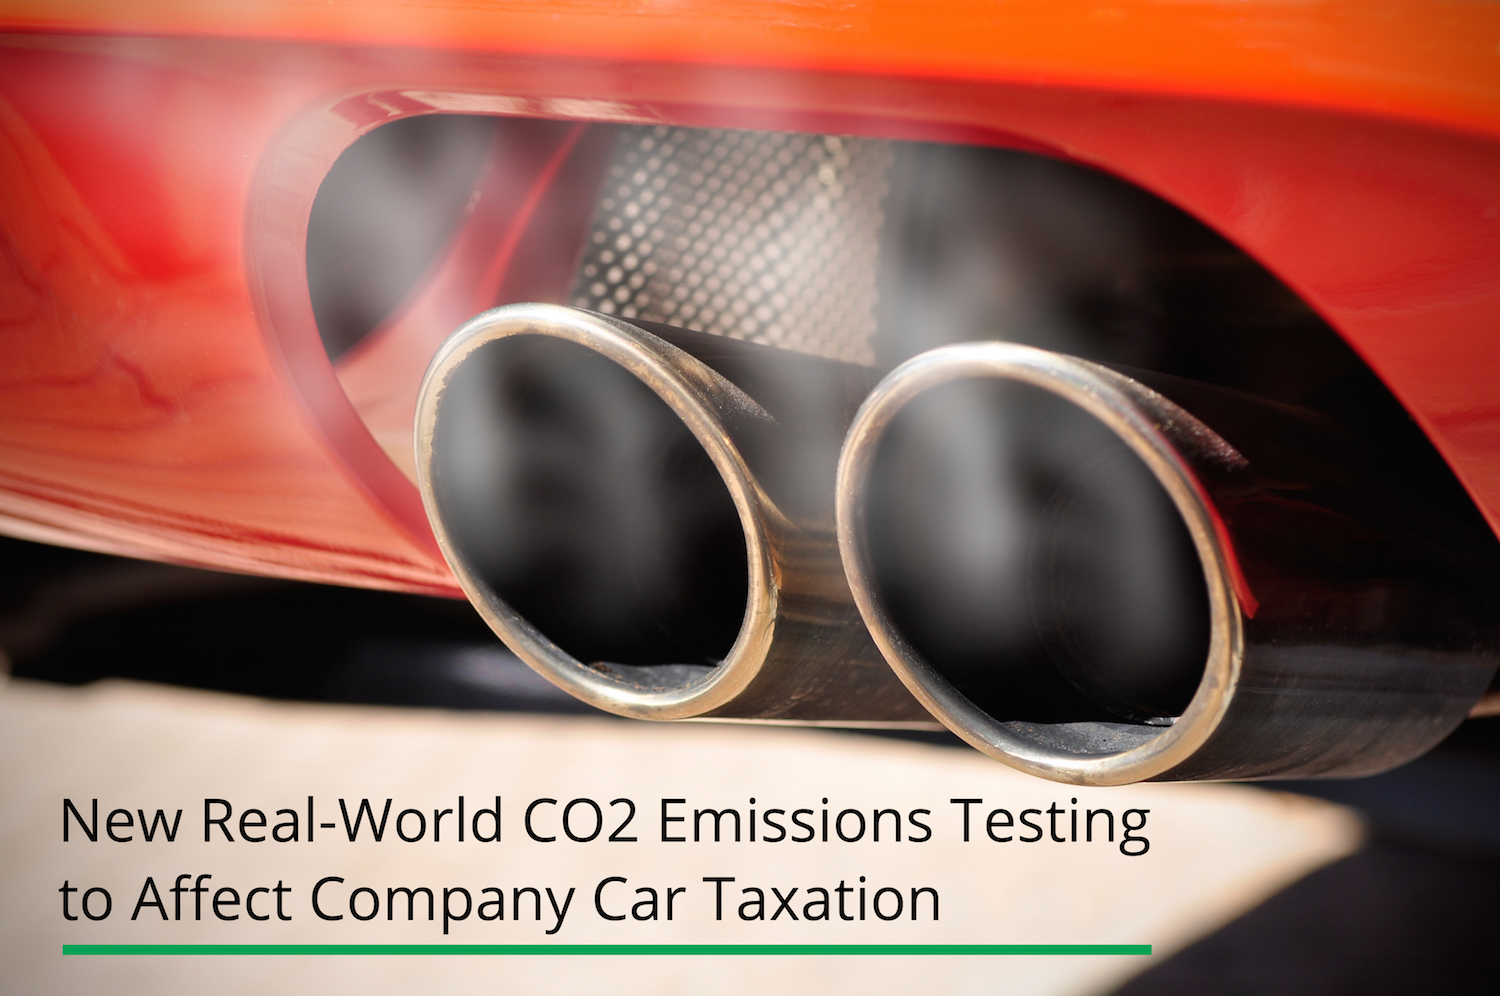 Real-world CO2 Emissions Testing